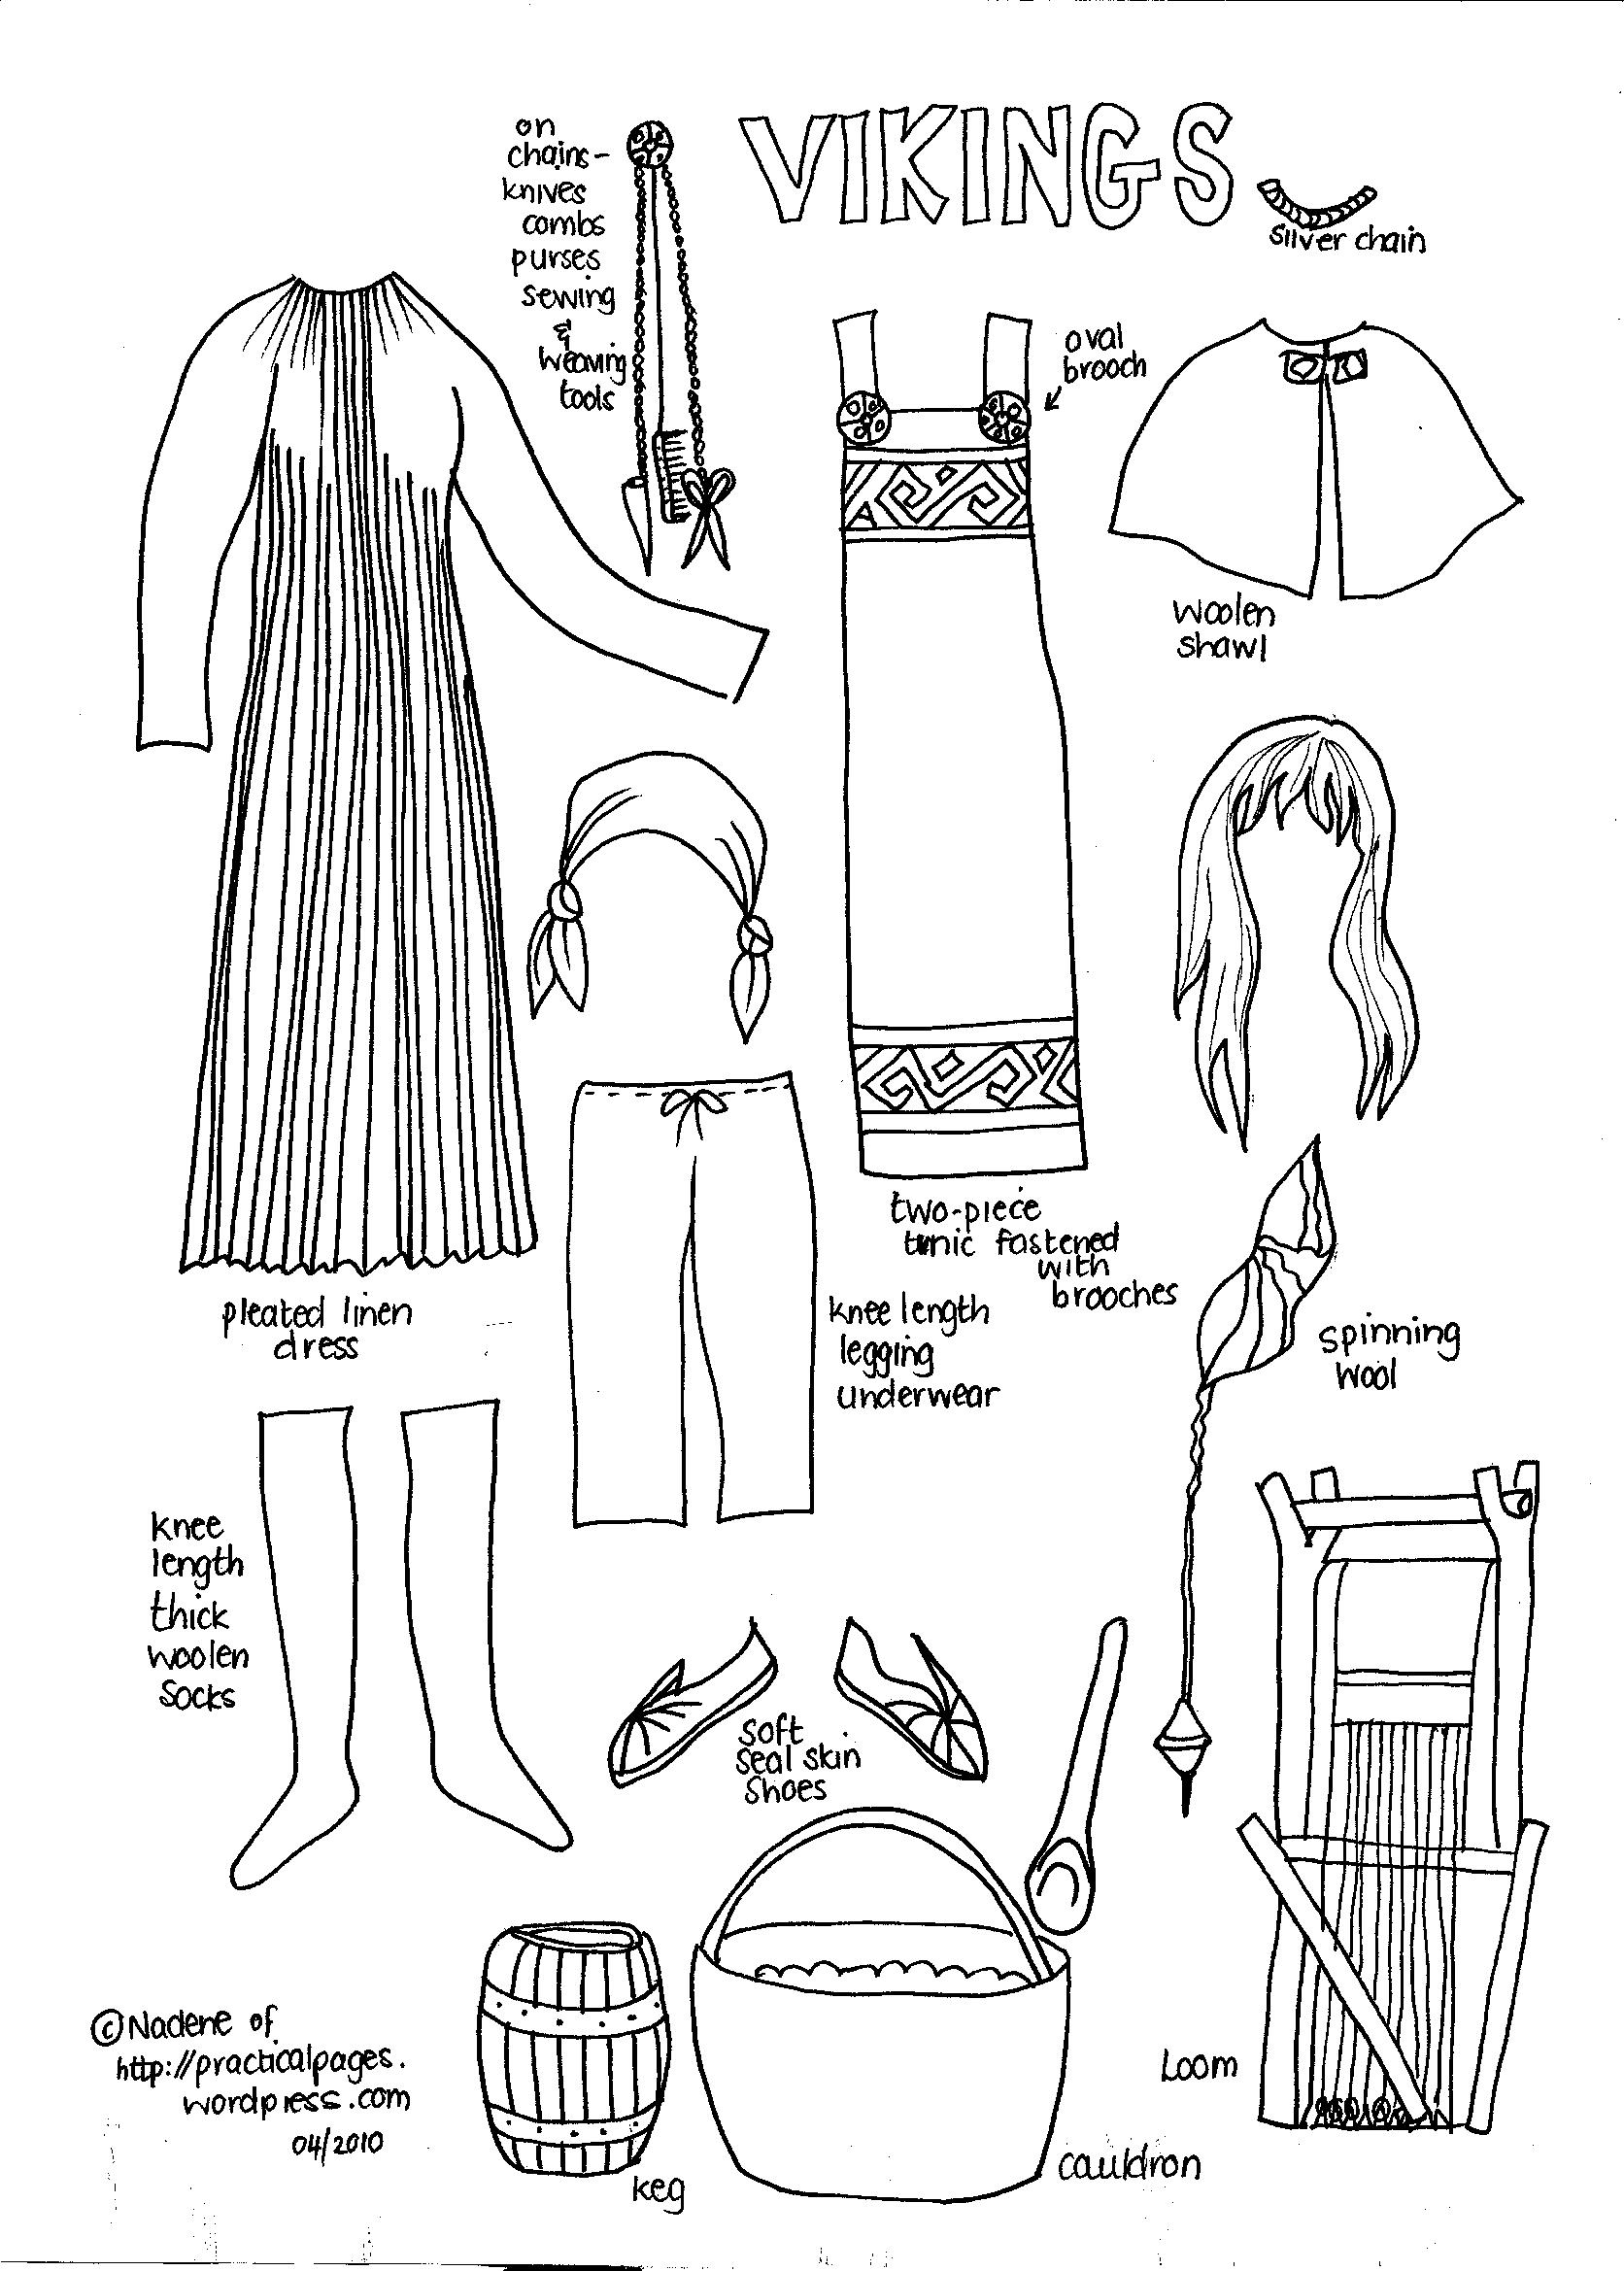 viking printables viking coloring pages to download and print for free viking printables